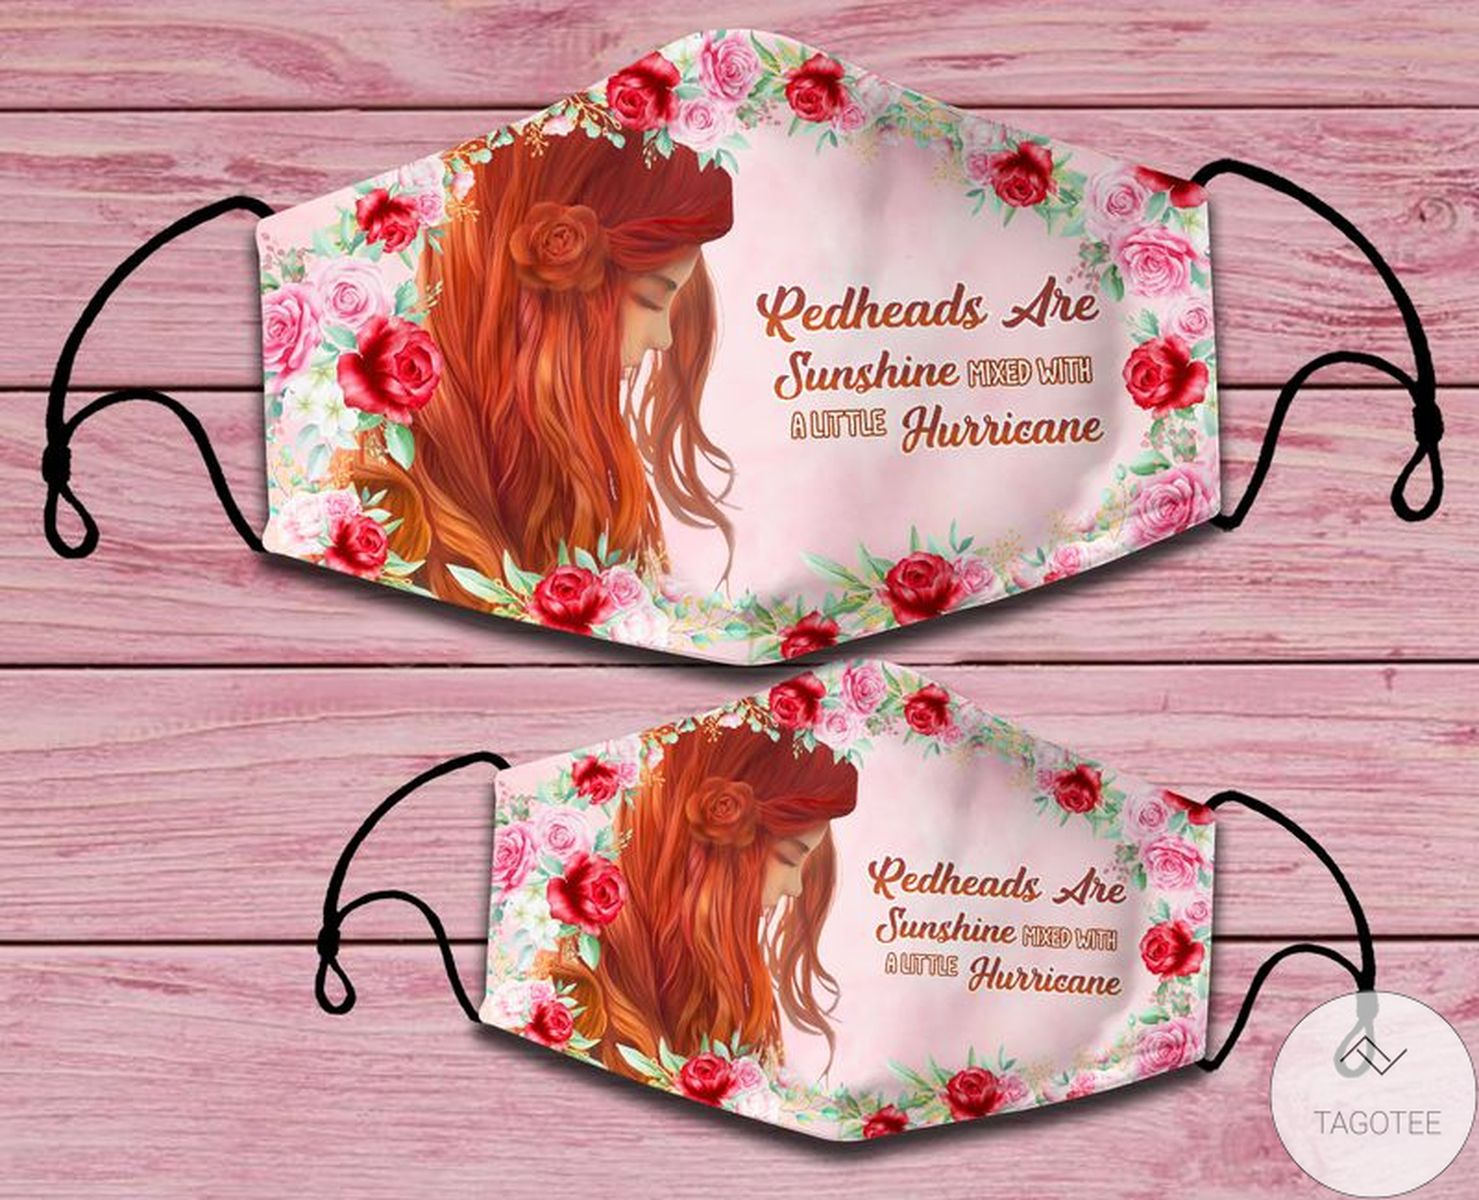 Redheads Are Sunshine Mixed With A Little Hurricane Flowers Face Mask